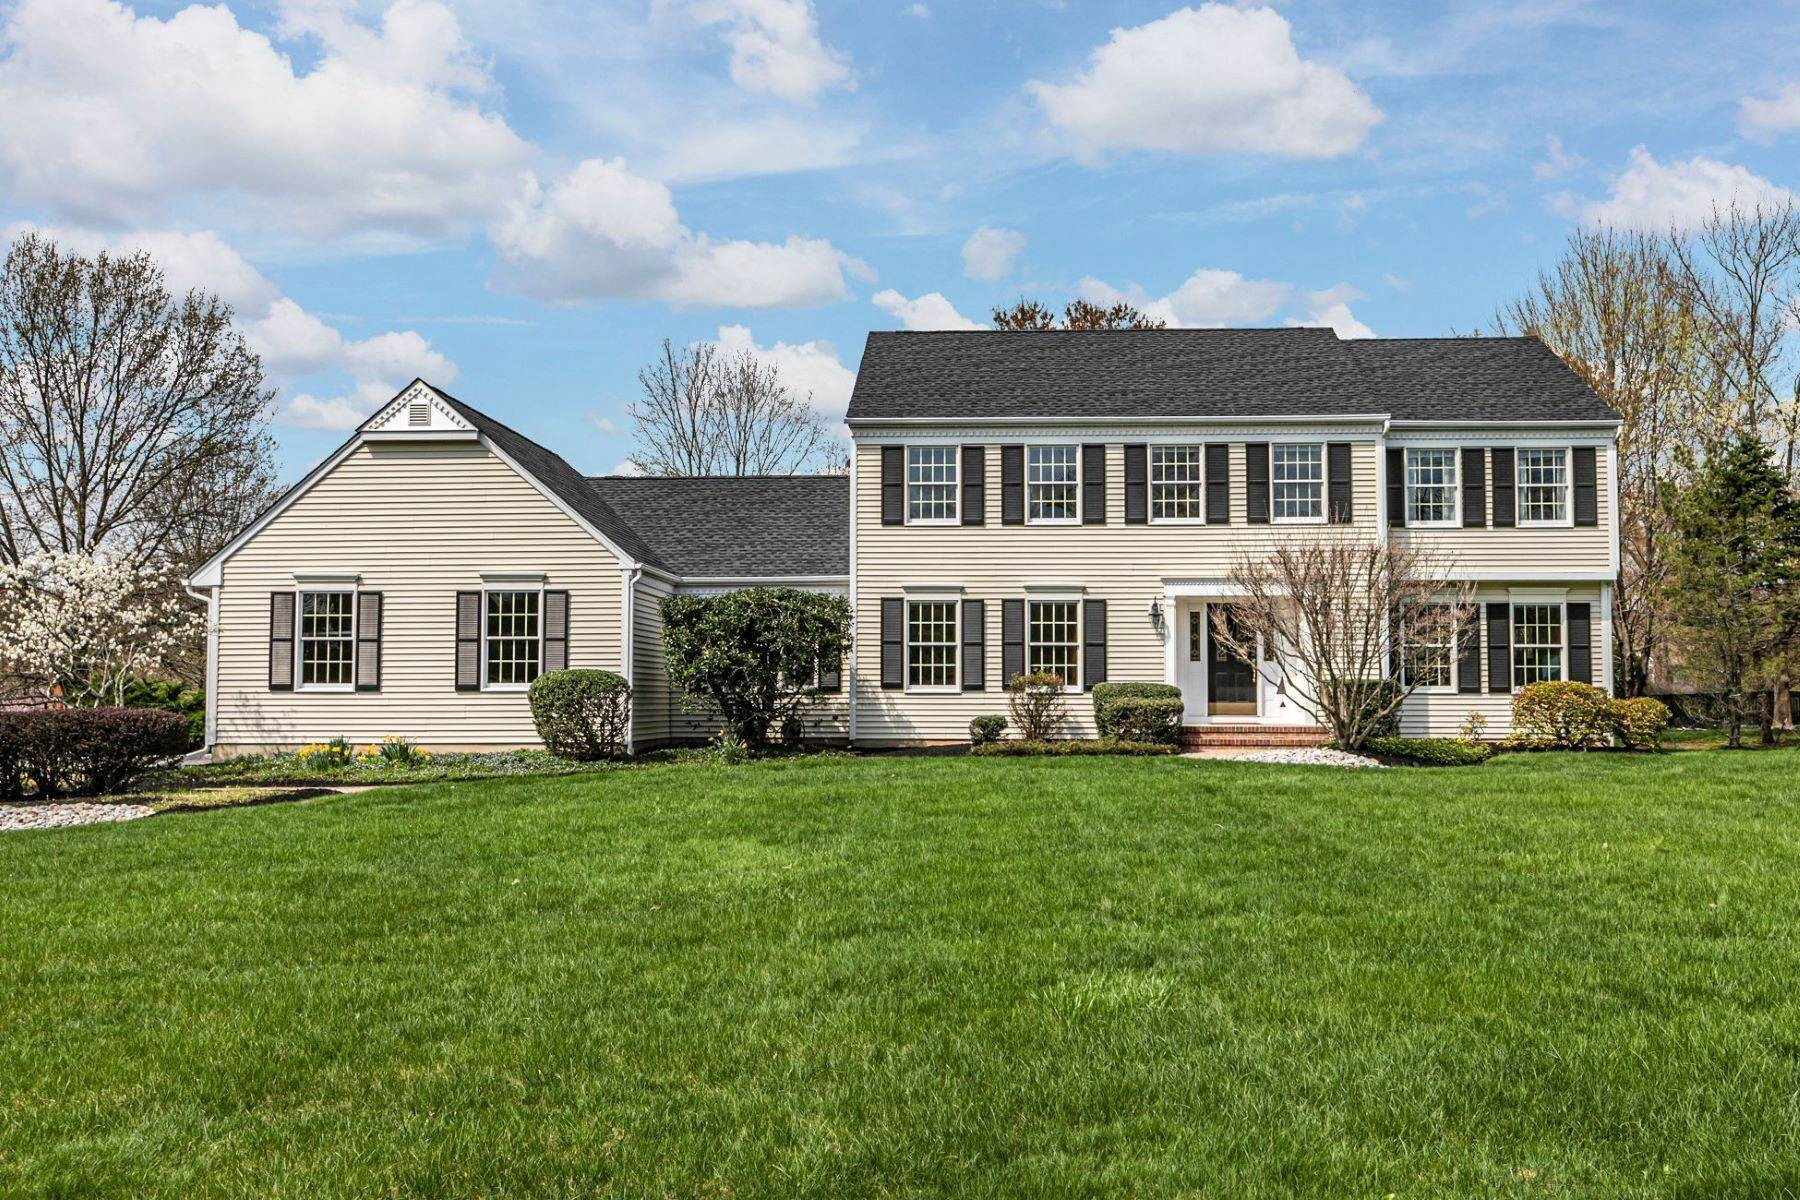 Single Family Homes for Sale at Handsome Colonial In Desired Neighborhood 16 Brandywine Road Skillman, New Jersey 08558 United States